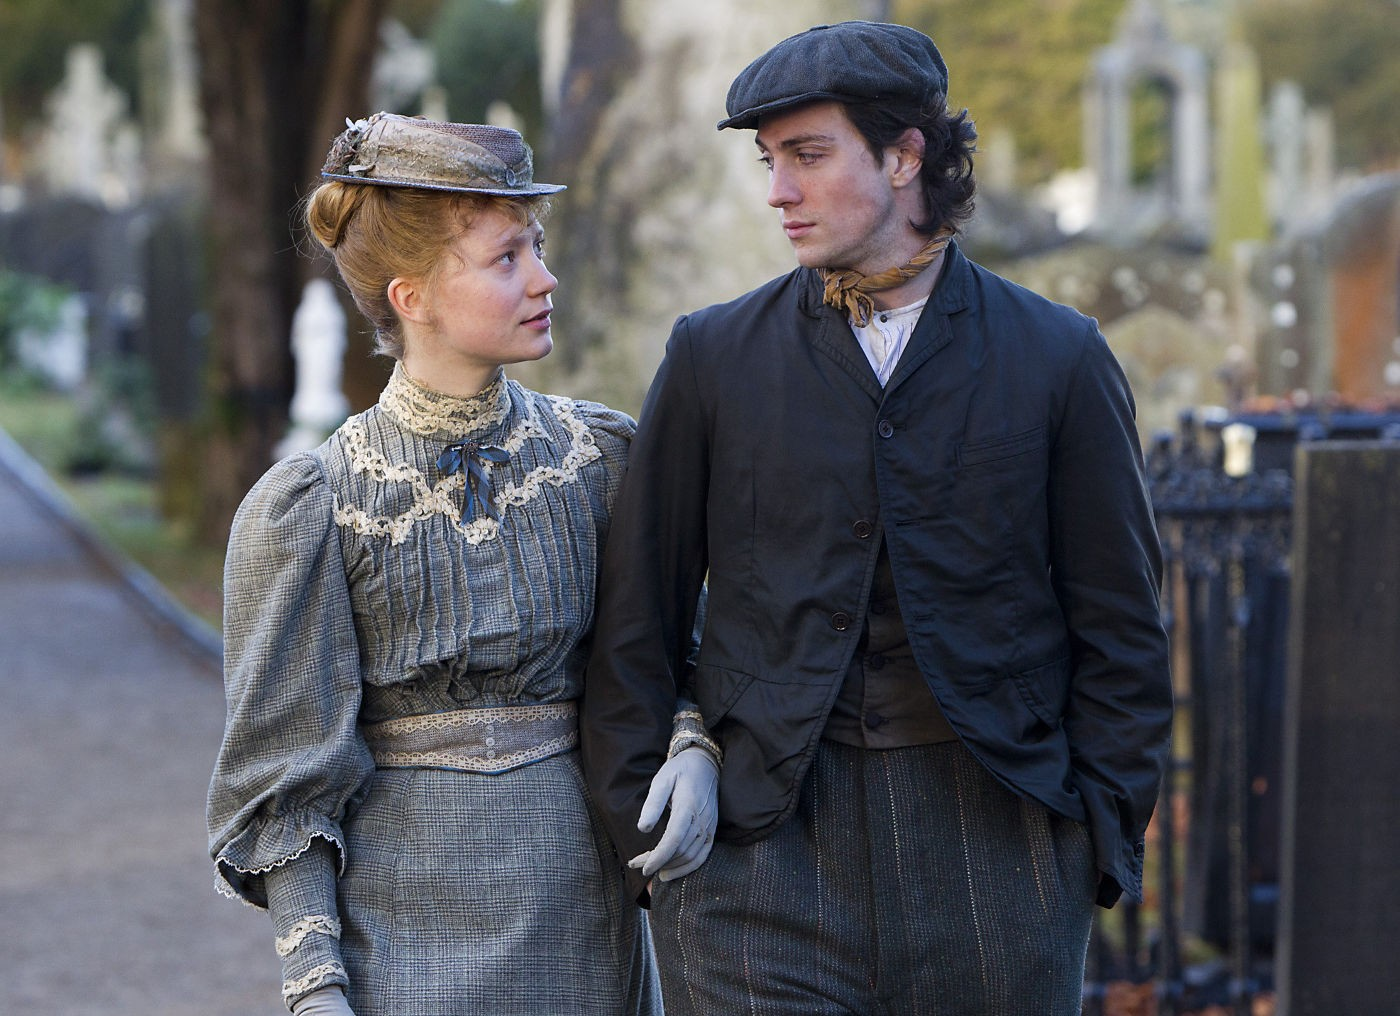 Lady Looks Like A Dude (Kinda): 'Albert Nobbs' Is A Drag ...